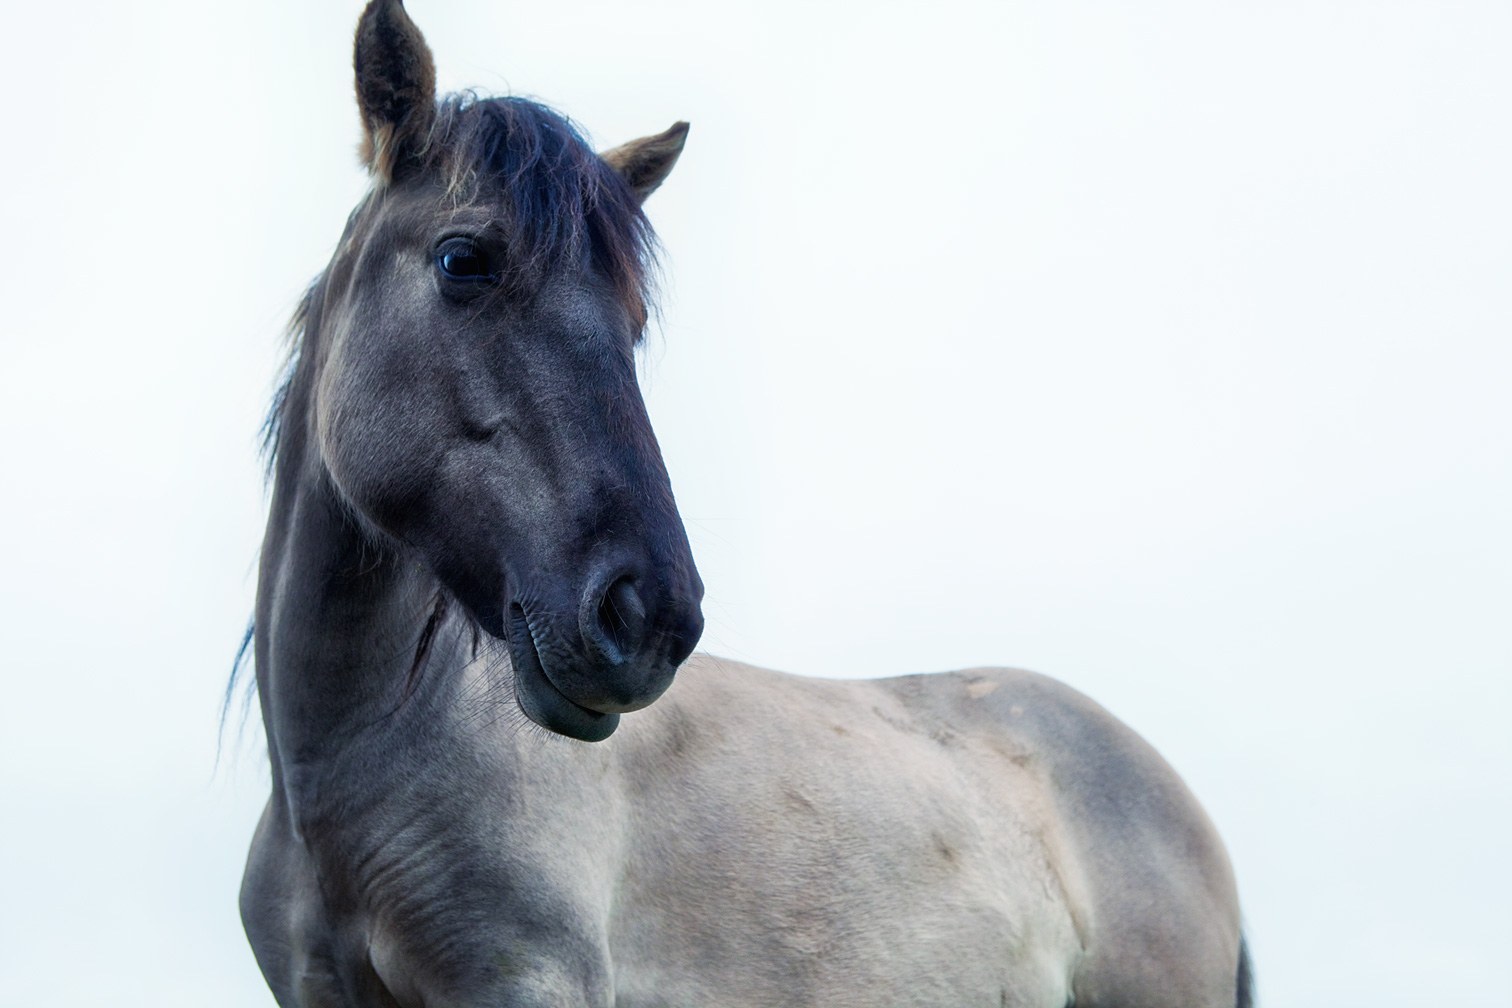 KONIK-HORSE-low-view-of-head-copy